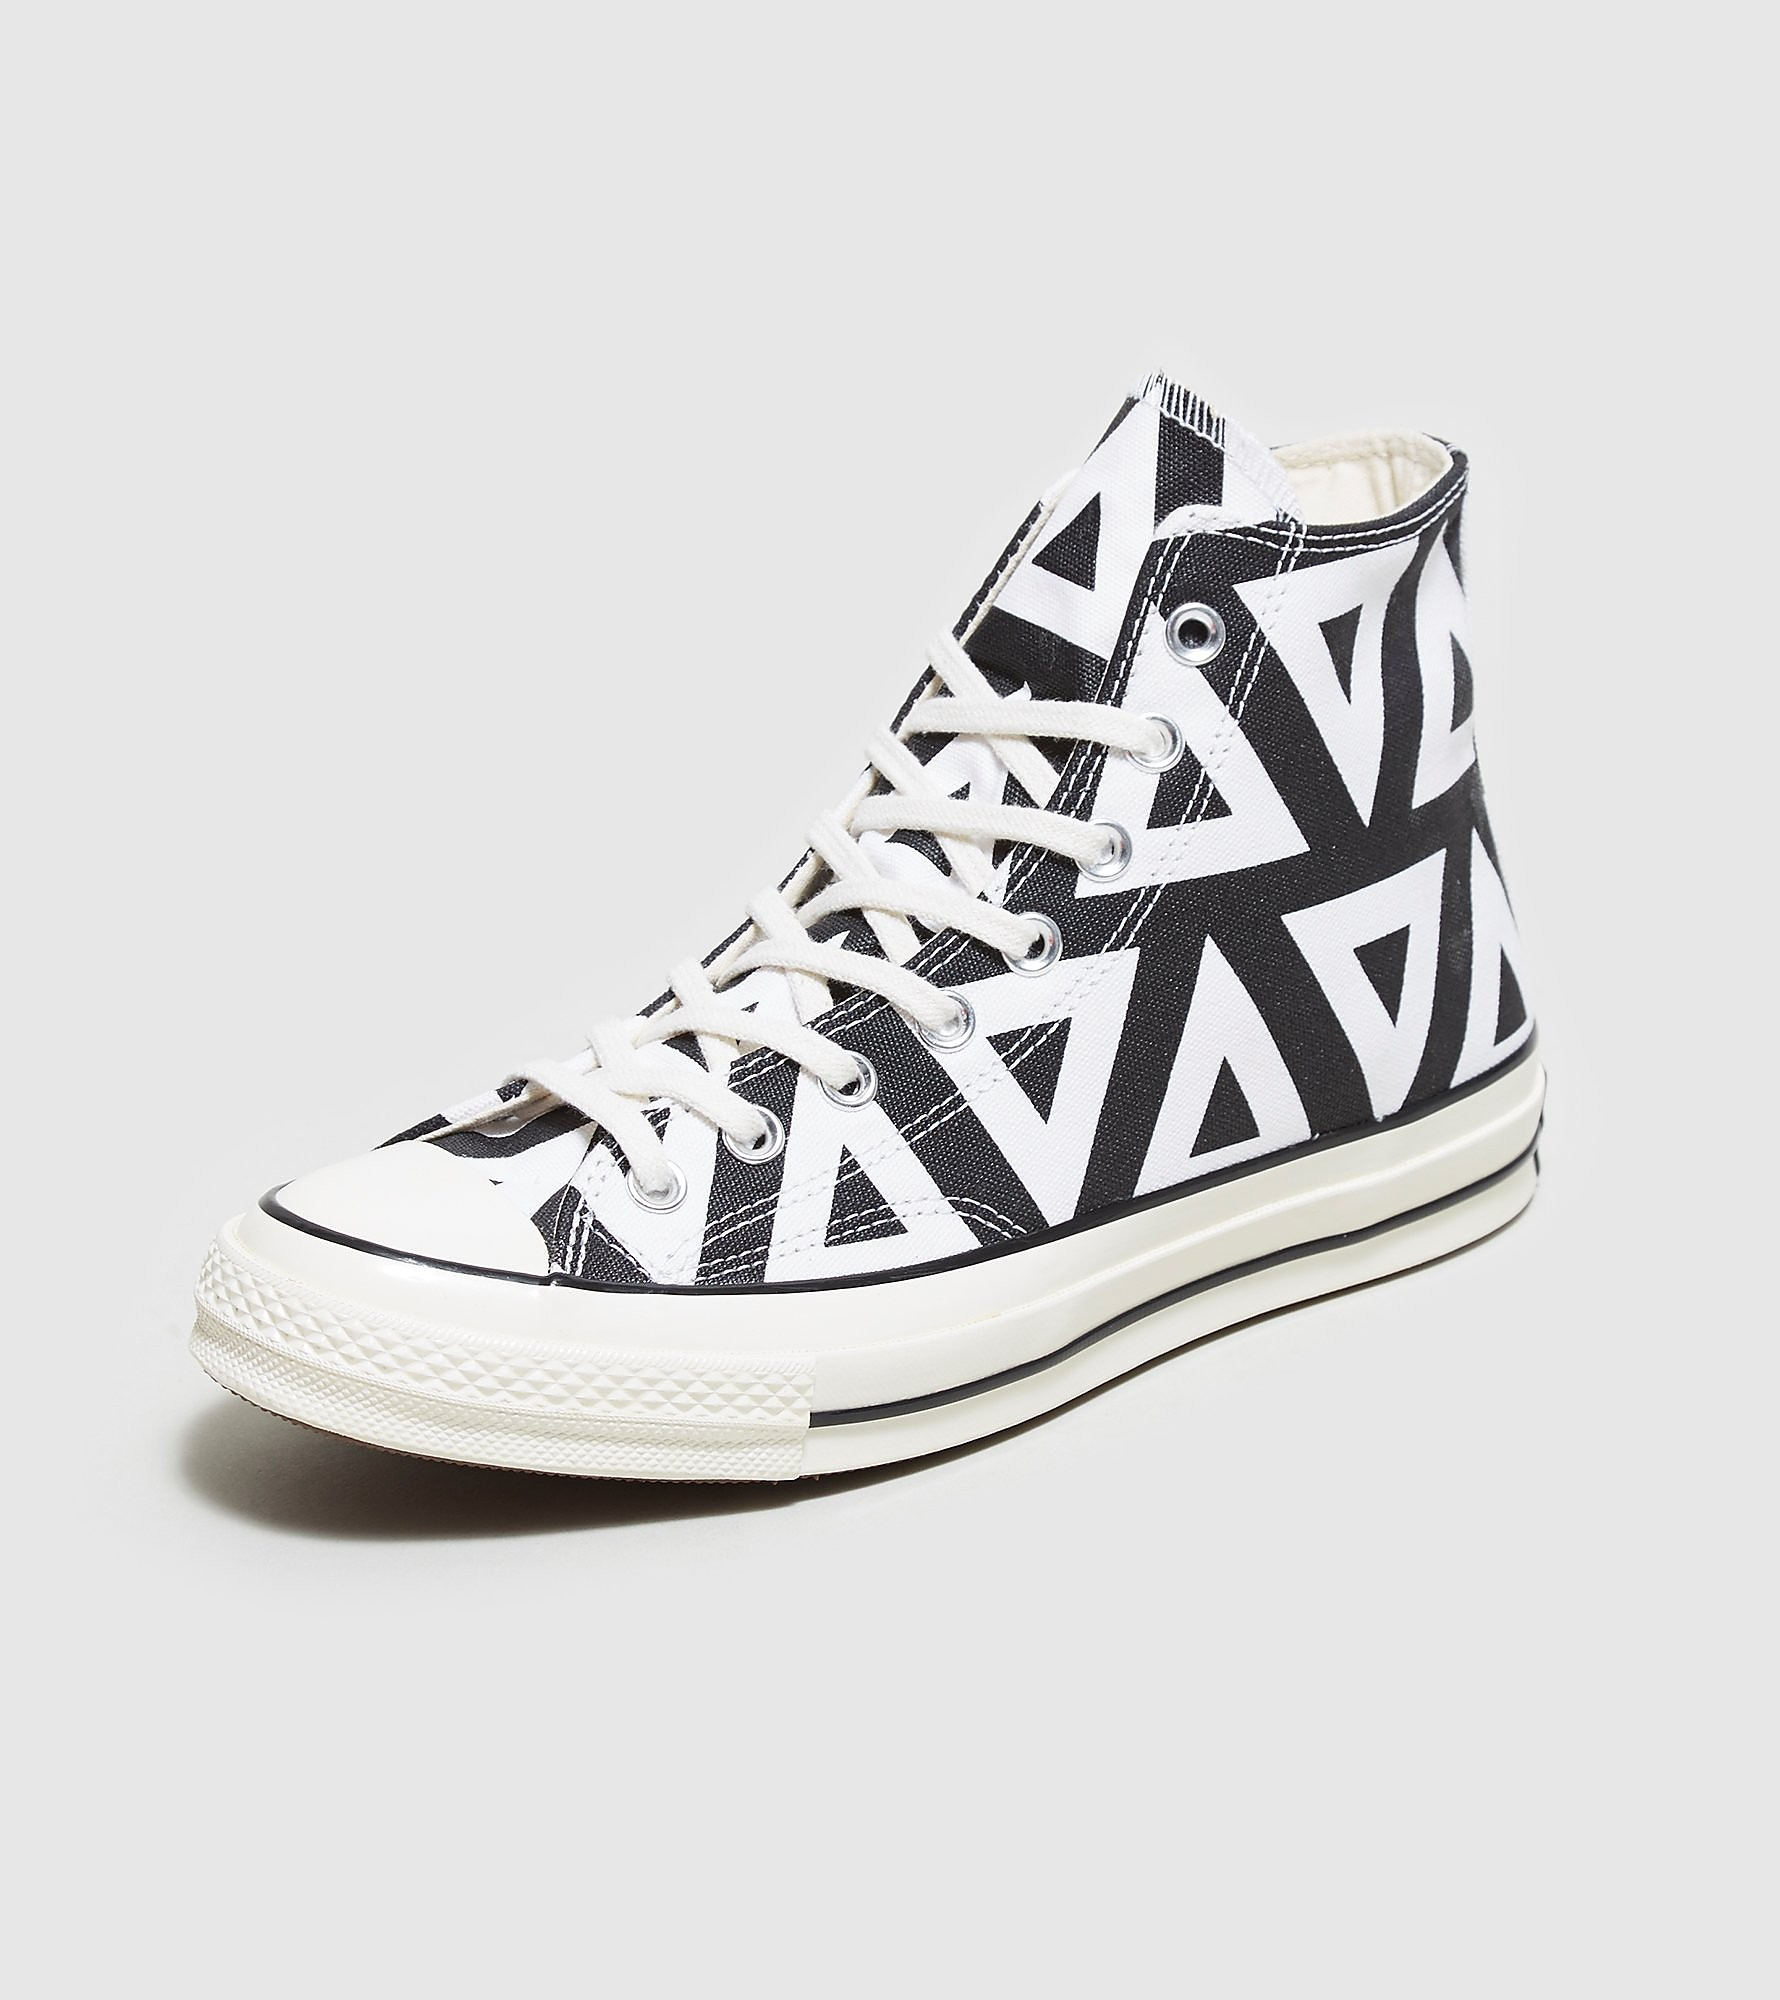 Converse All Star High '70